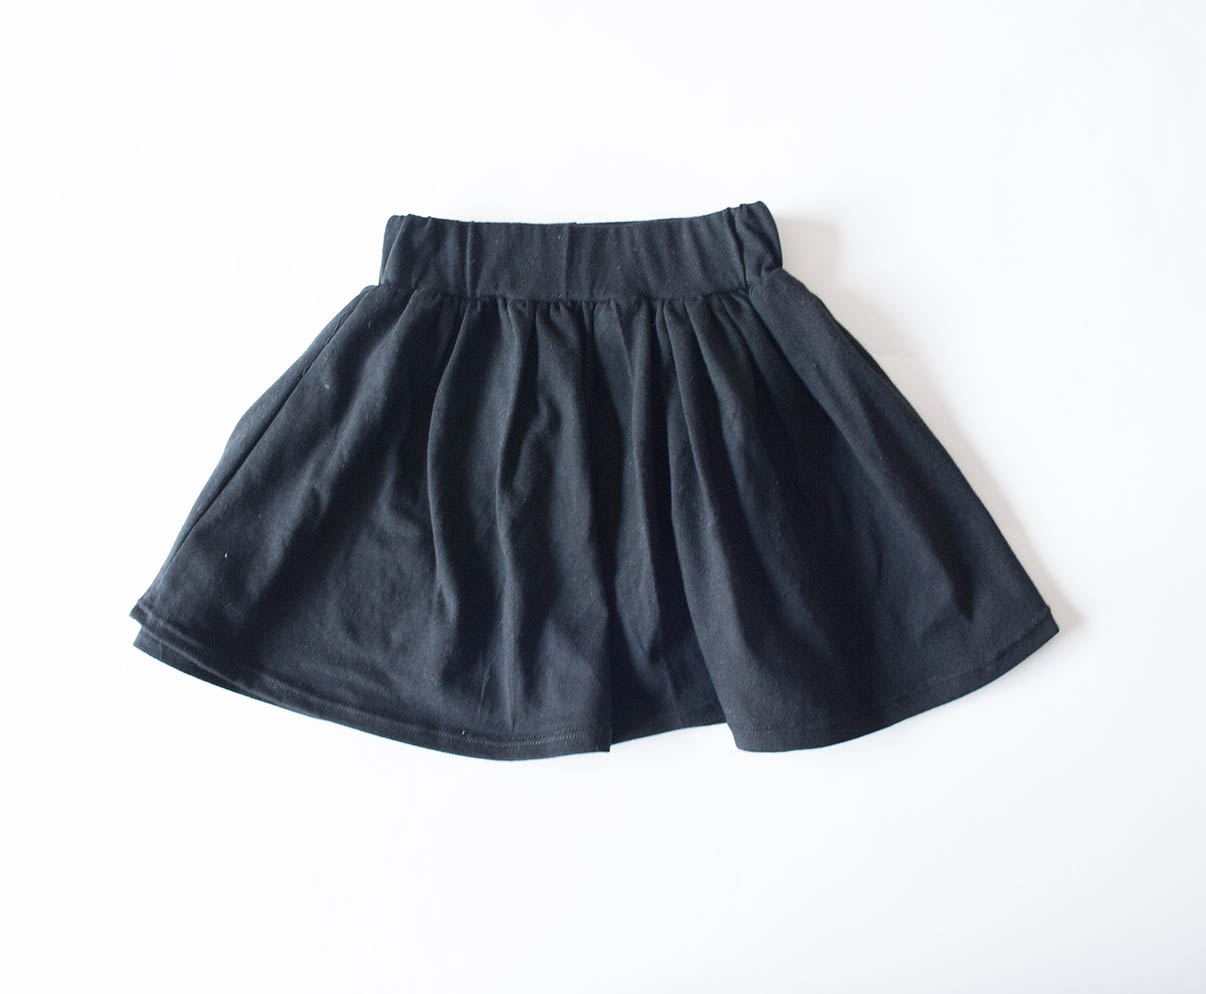 OUR SKIRTS COME IN PLAIN COLOURS ASWELL AS SOME BEAUTIFUL PRINTS.  THEY ARE FLAIR SKIRTS & ARE MADE OUT OF GOOD QUALITY COTTON KNIT.